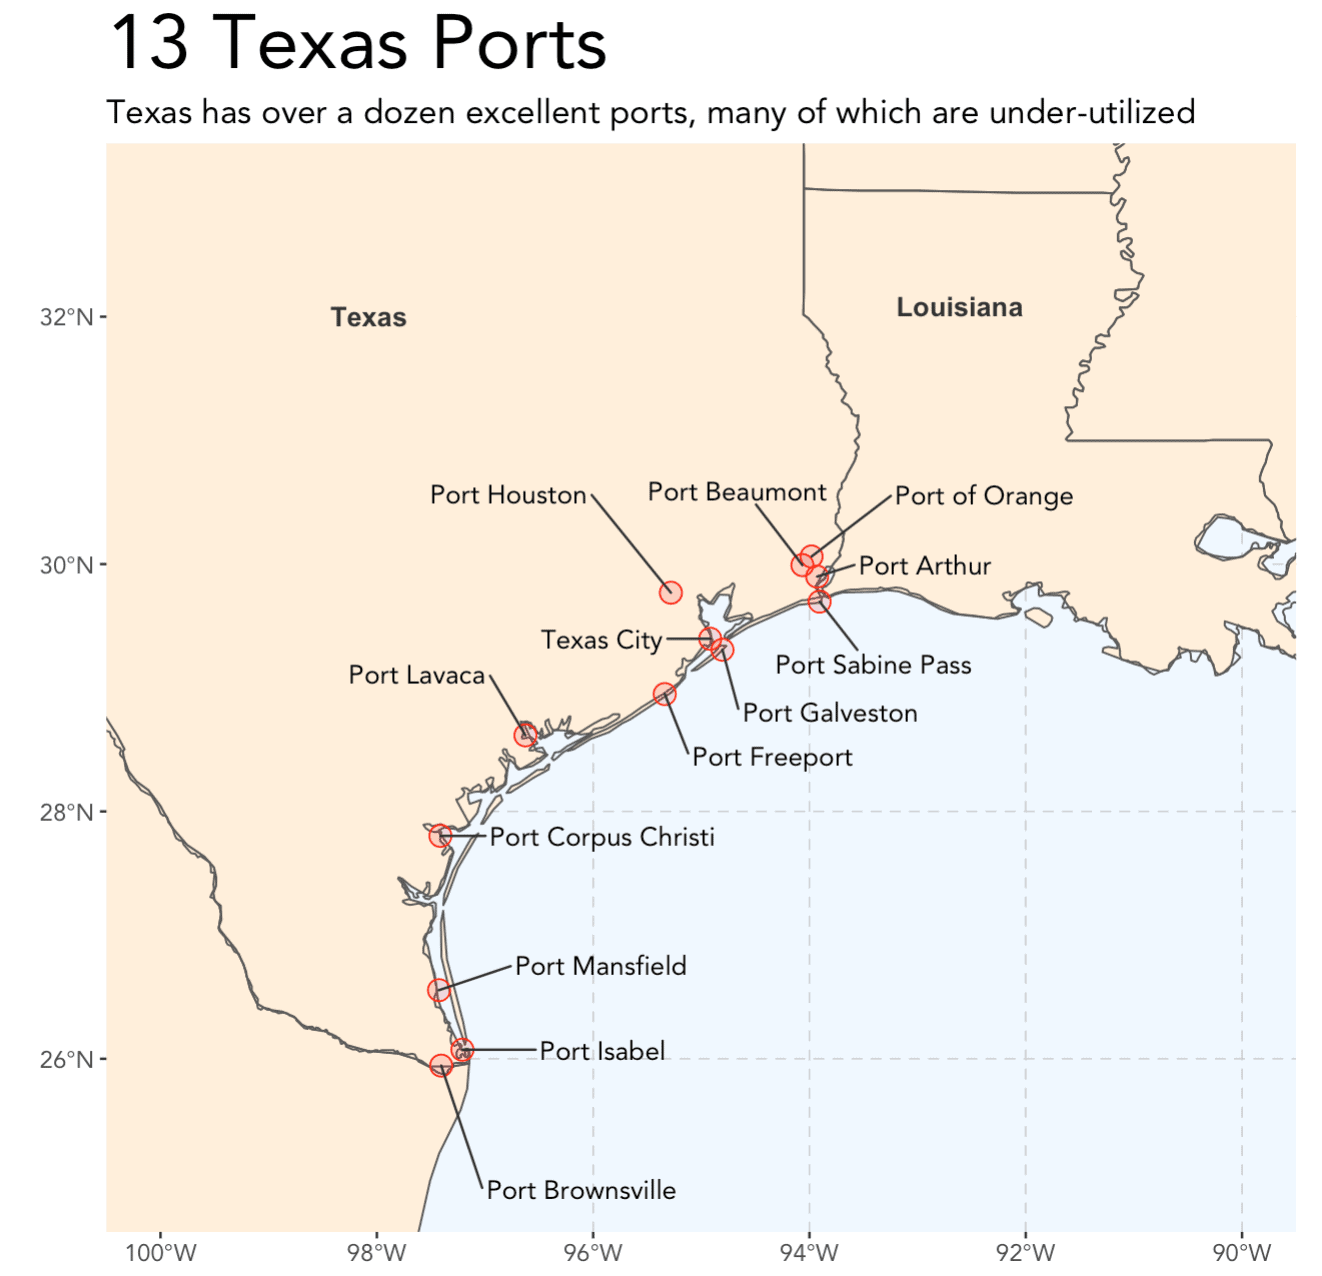 A finalized map made with R and ggplot2 that shows 13 Texas ports with labels.